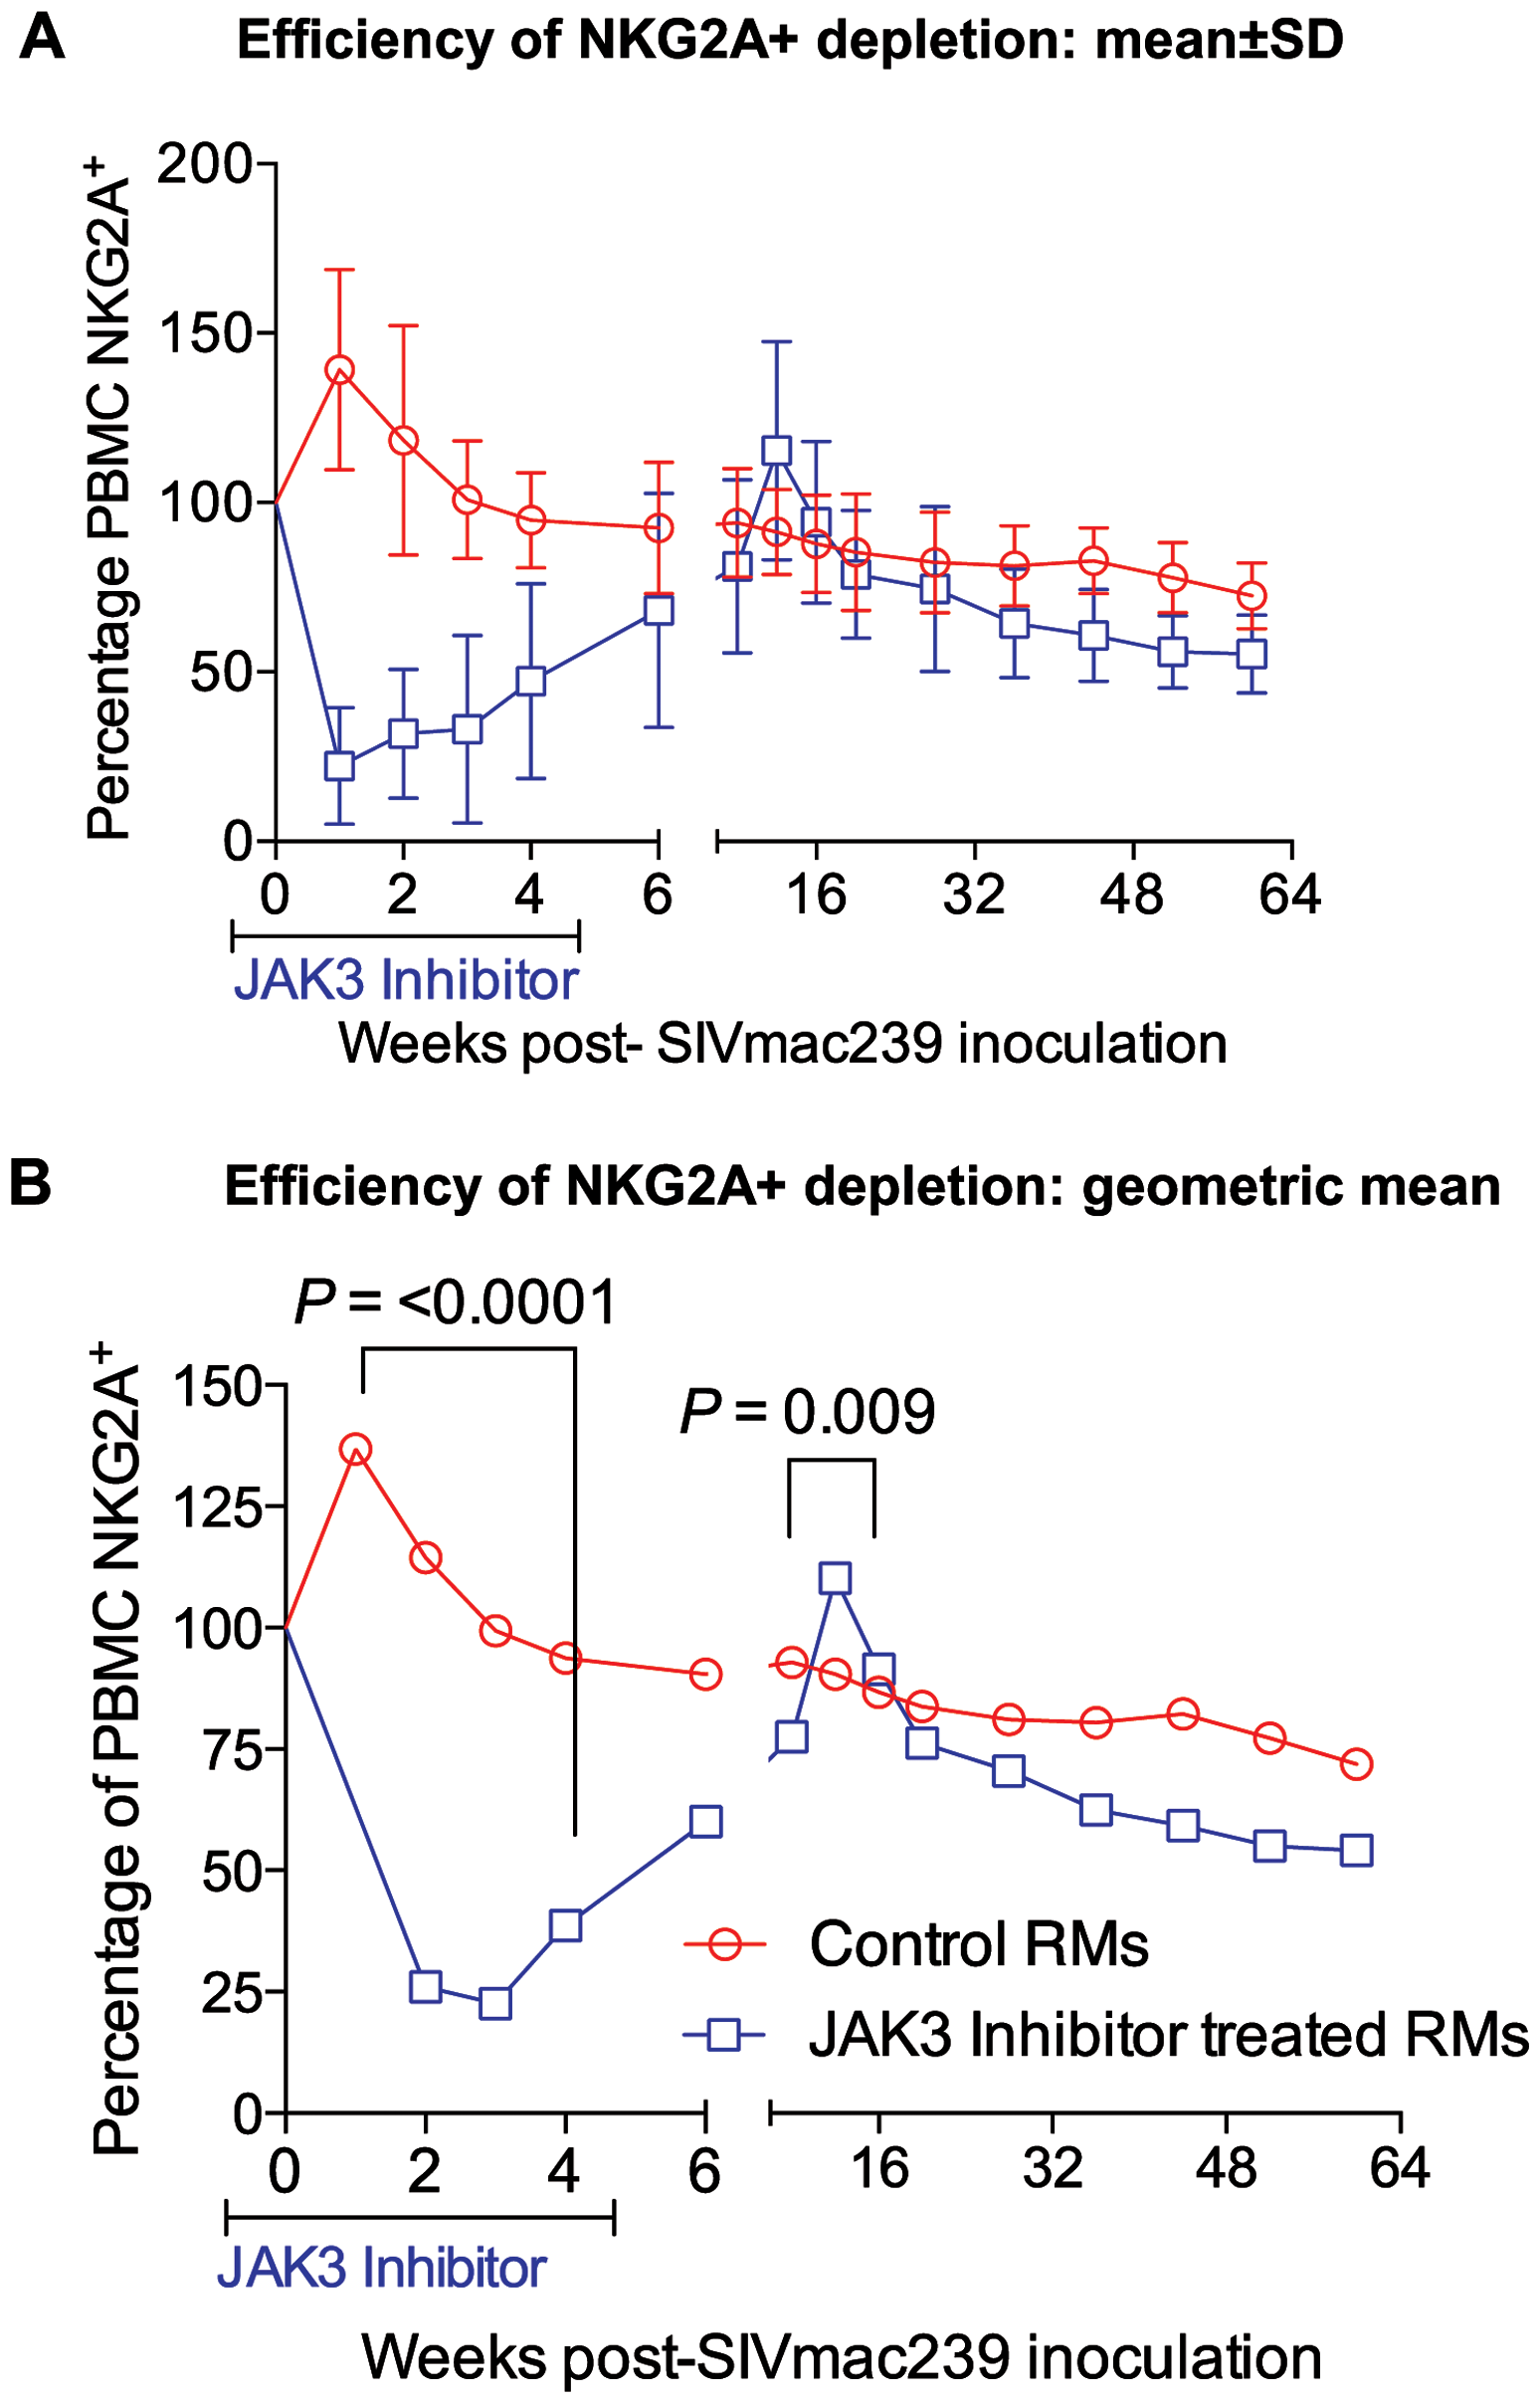 The efficiency (% change from a mean of 3 baseline values) of depletion in the absolute numbers of CD3<sup>−</sup>, CD8α<sup>+</sup>, NKG2a<sup>+</sup> (total NK cells) in the PBMC of control and the animals that received the JAK3 inhibitor as a function of time post infection is illustrated.